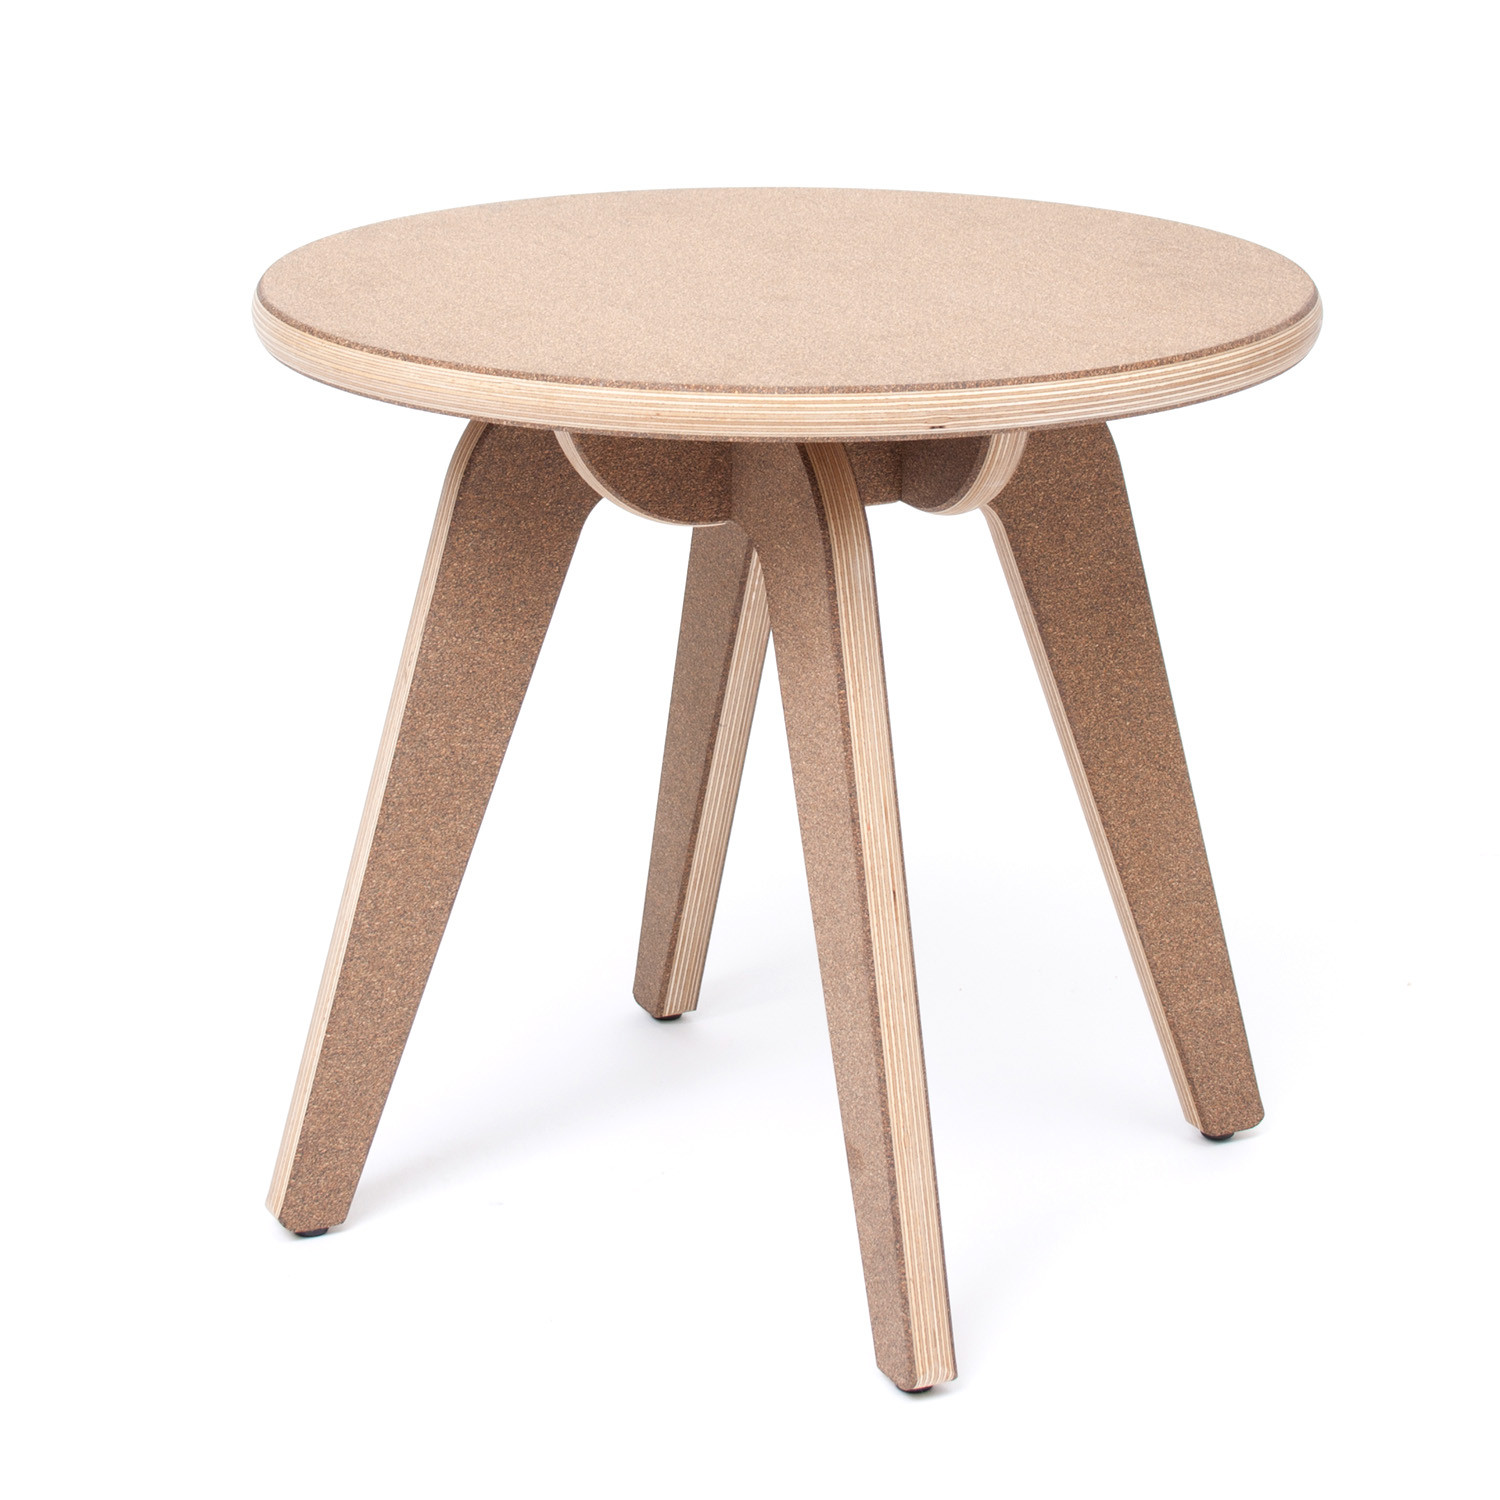 Cork Breakout Table